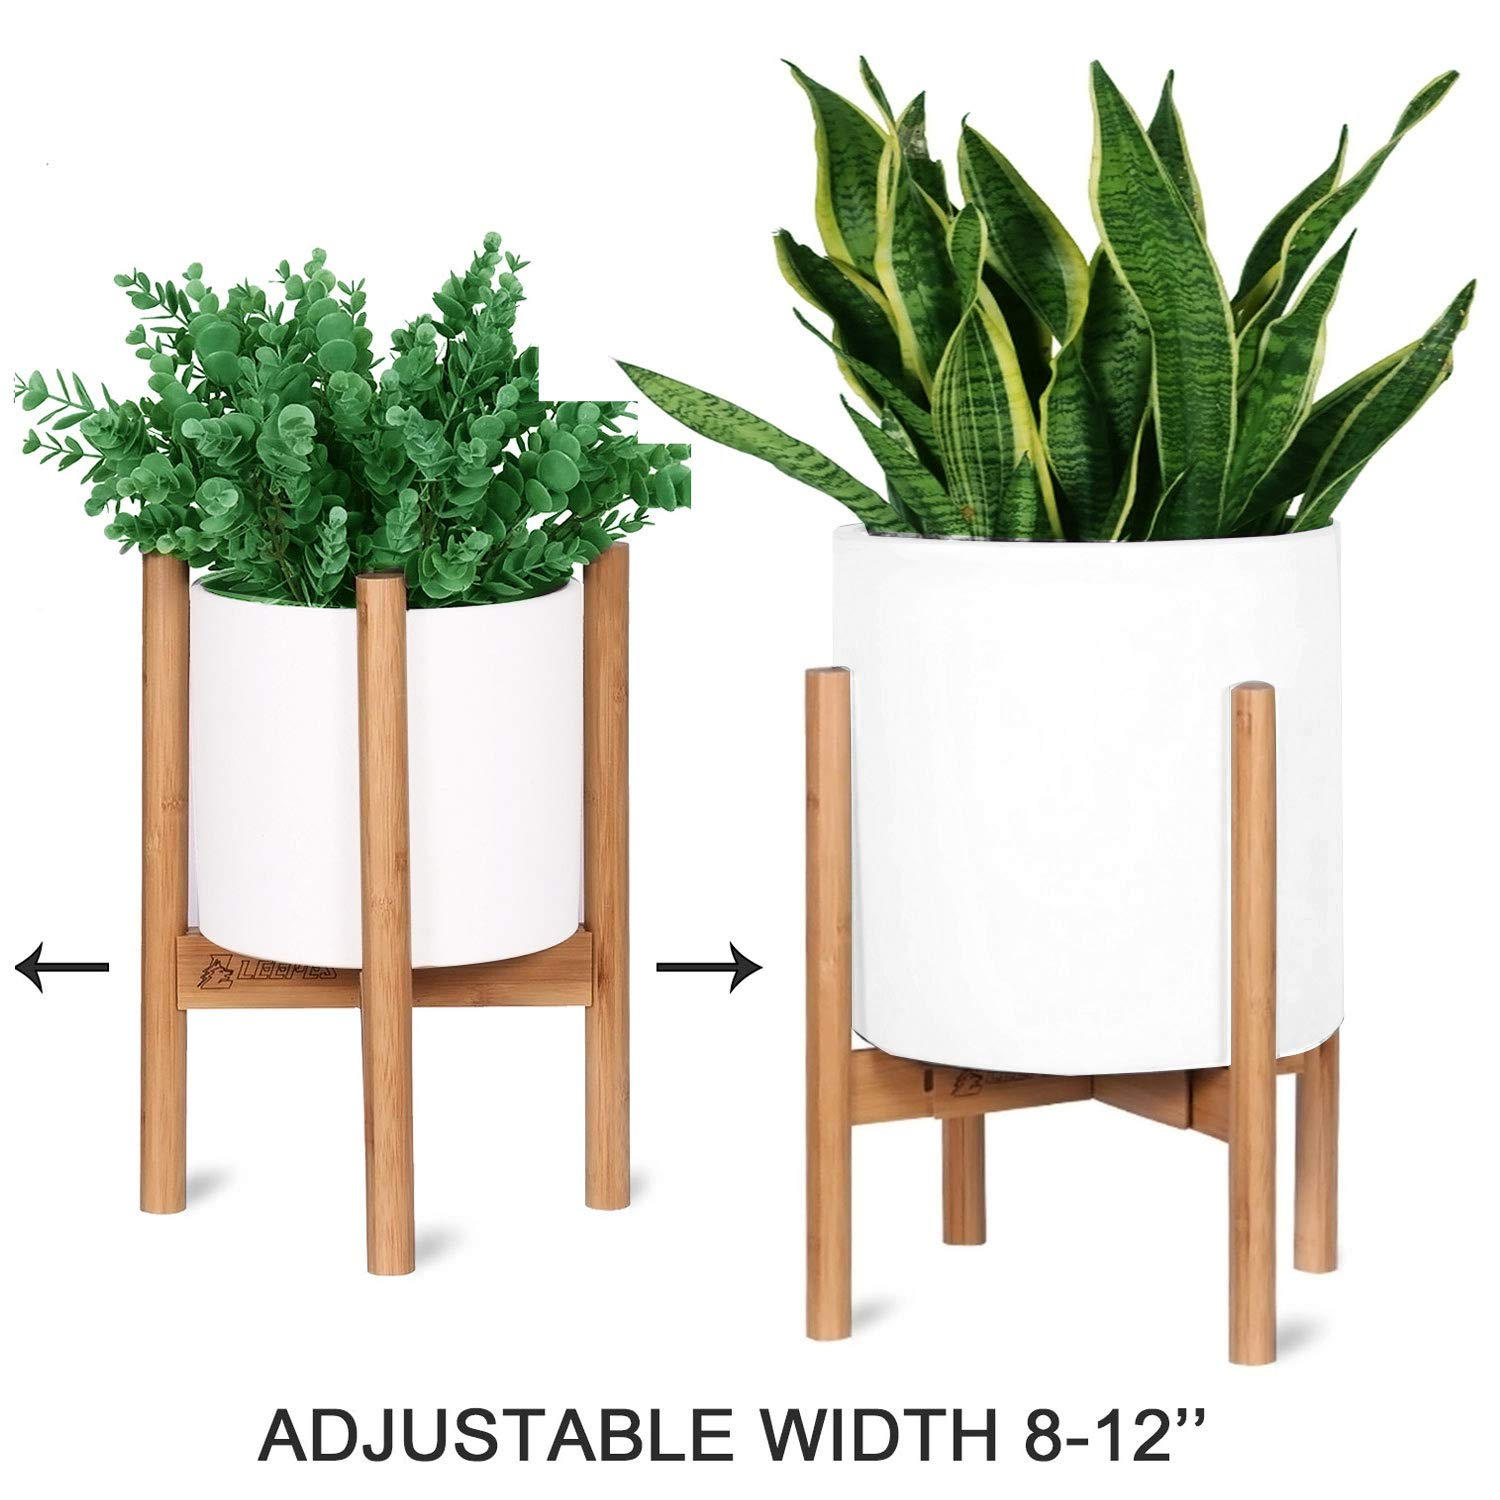 """LEEPES Bamboo Plant Stand Adjustable Width, Mid Century Modern Planter Holder Display Potted Rack Home Decor Indoor Suitable for 8-12"""" Pot (Plant and Pot NOT Included)"""